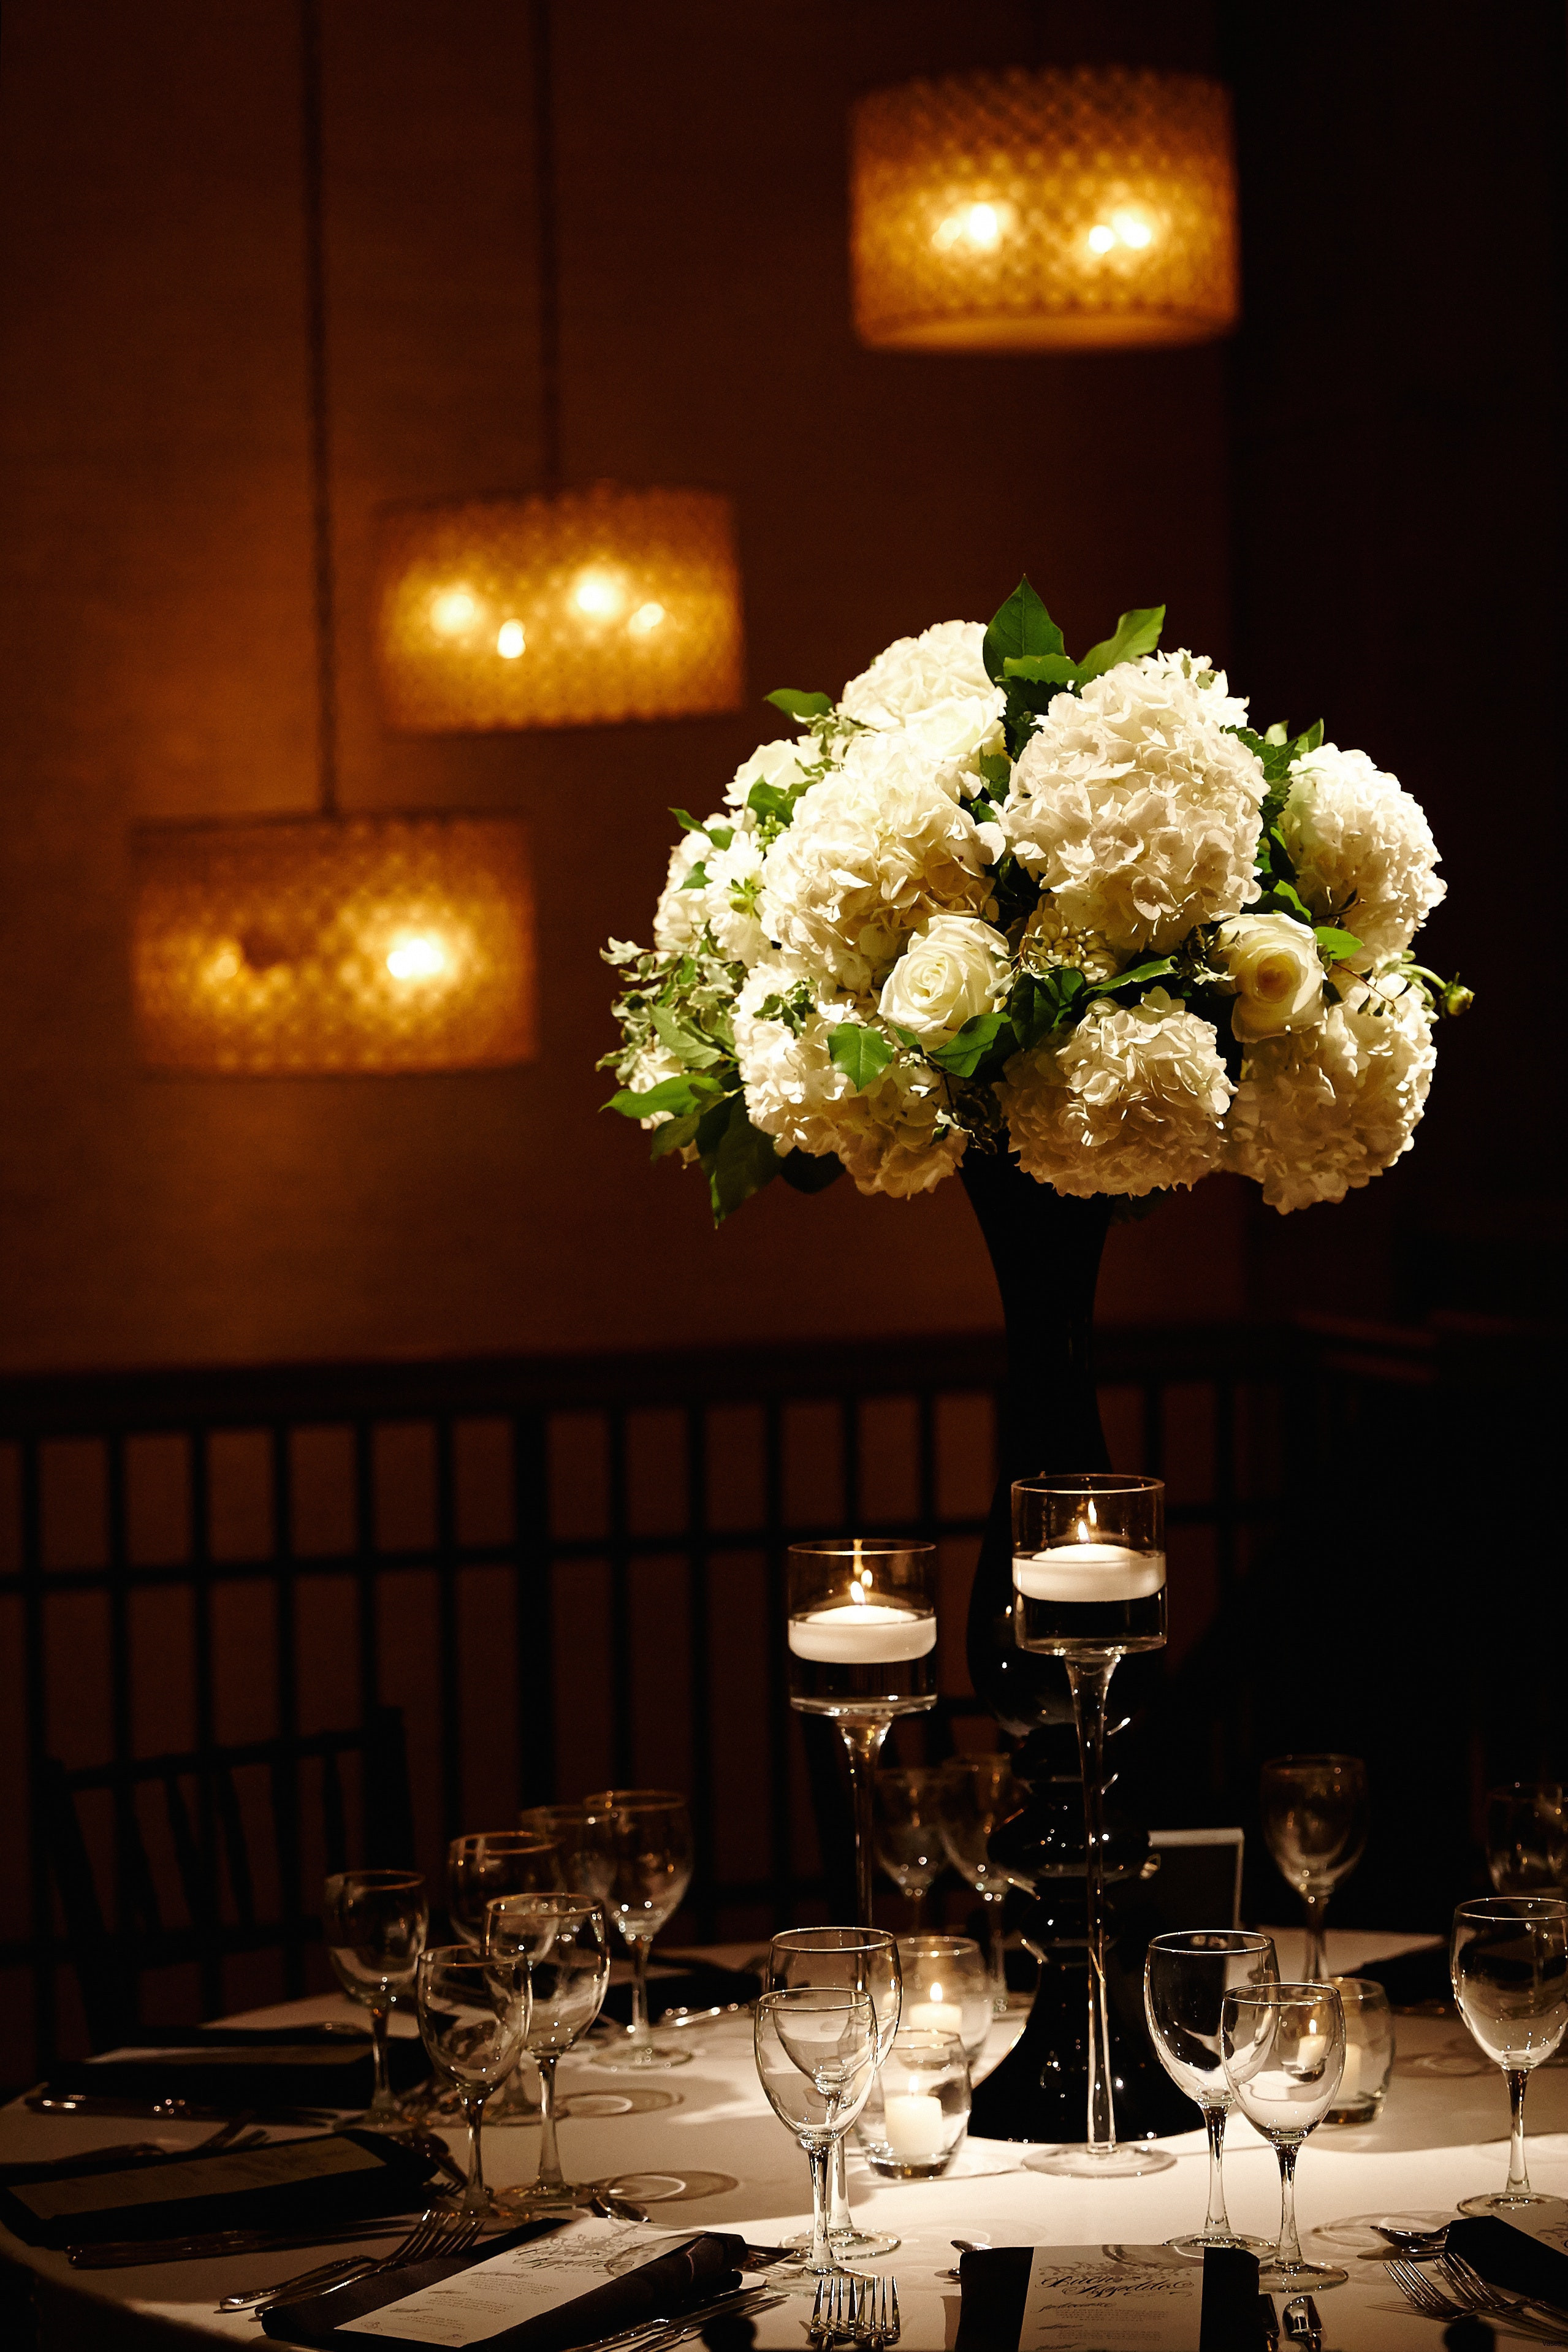 vintage brown glass vase of brown glass vase stock wedding flower centerpieces ideas 2019 il inside brown glass vase stock wedding flower centerpieces ideas 2019 il fullxfull h vases black